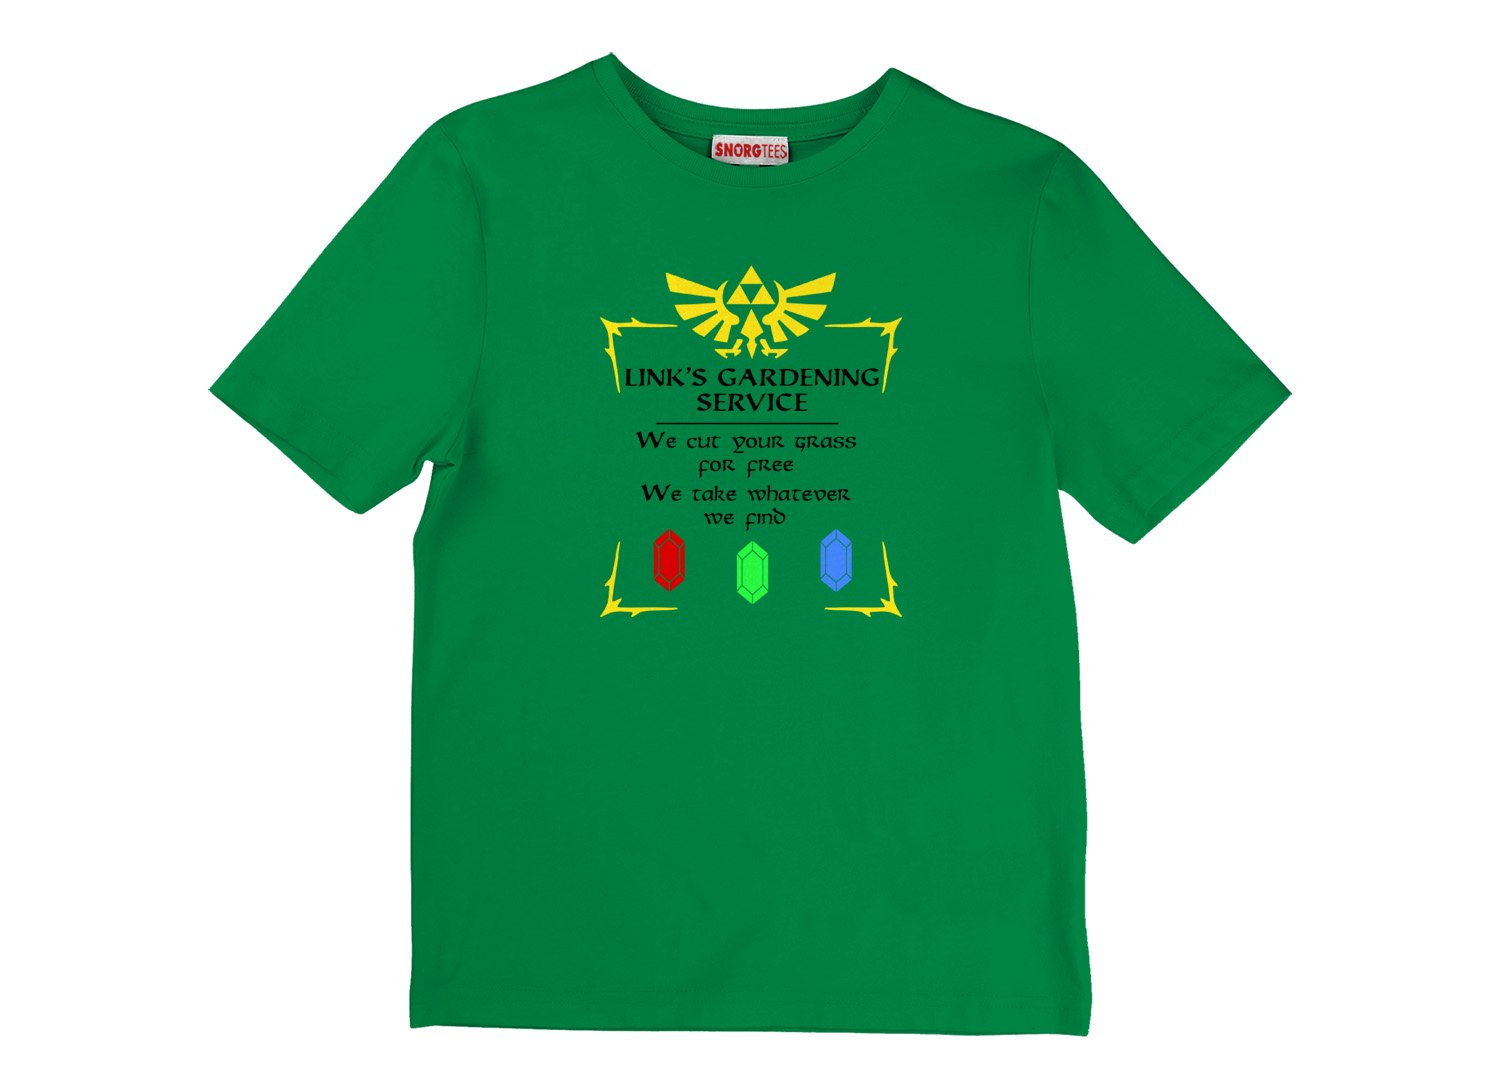 Link's Gardening Service on Kids T-Shirt